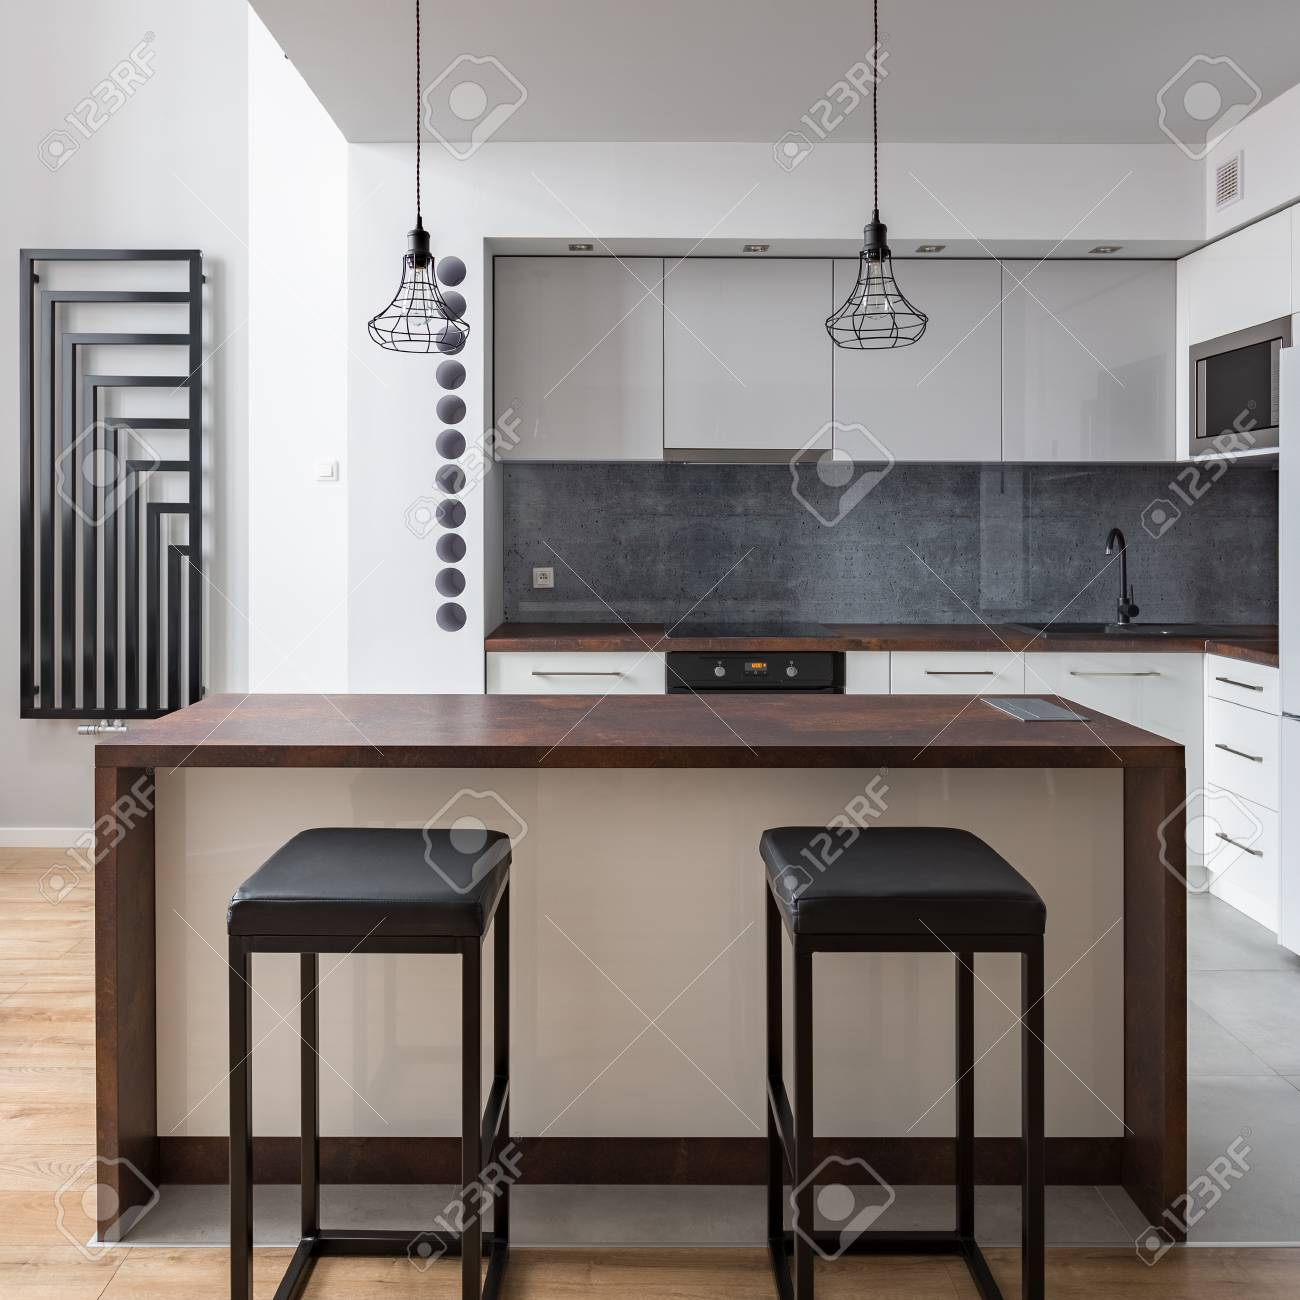 Modern Open Kitchen With Table Stools And Decorative Wall Radiator Stock Photo Picture And Royalty Free Image Image 108426424